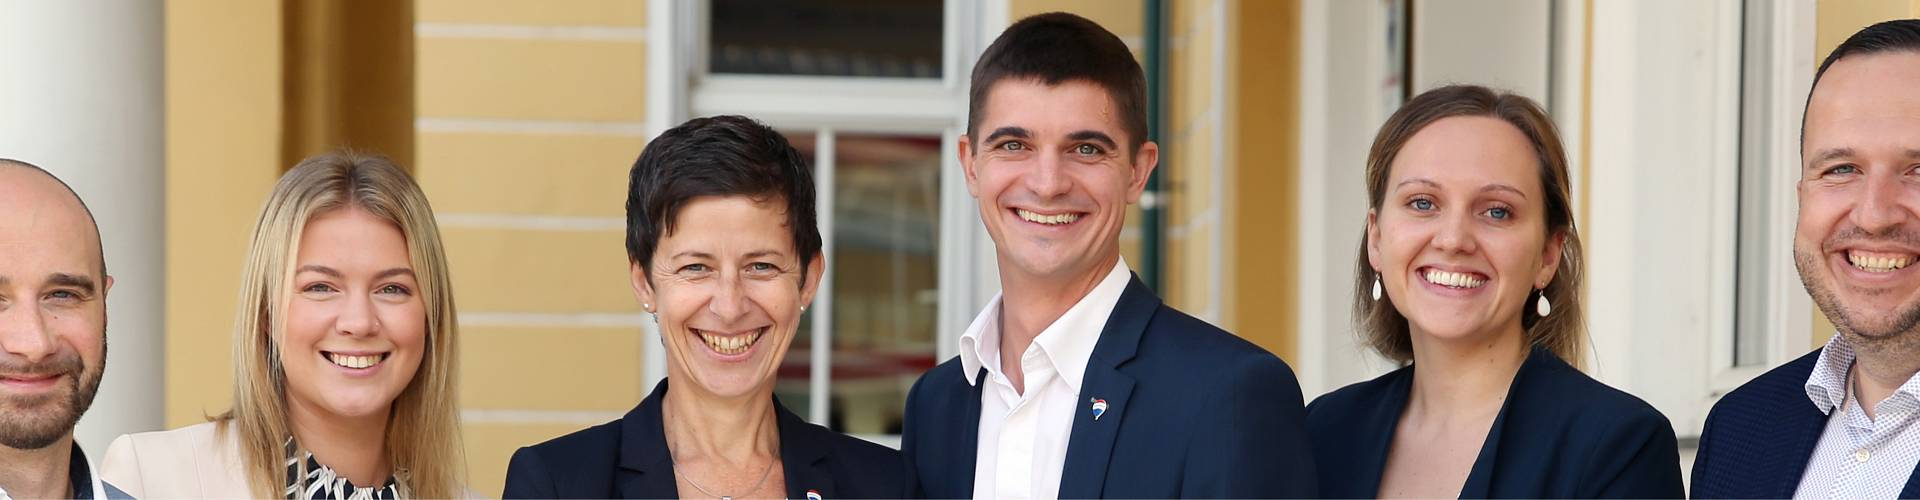 RE/MAX Immo-Team in St. Valentin